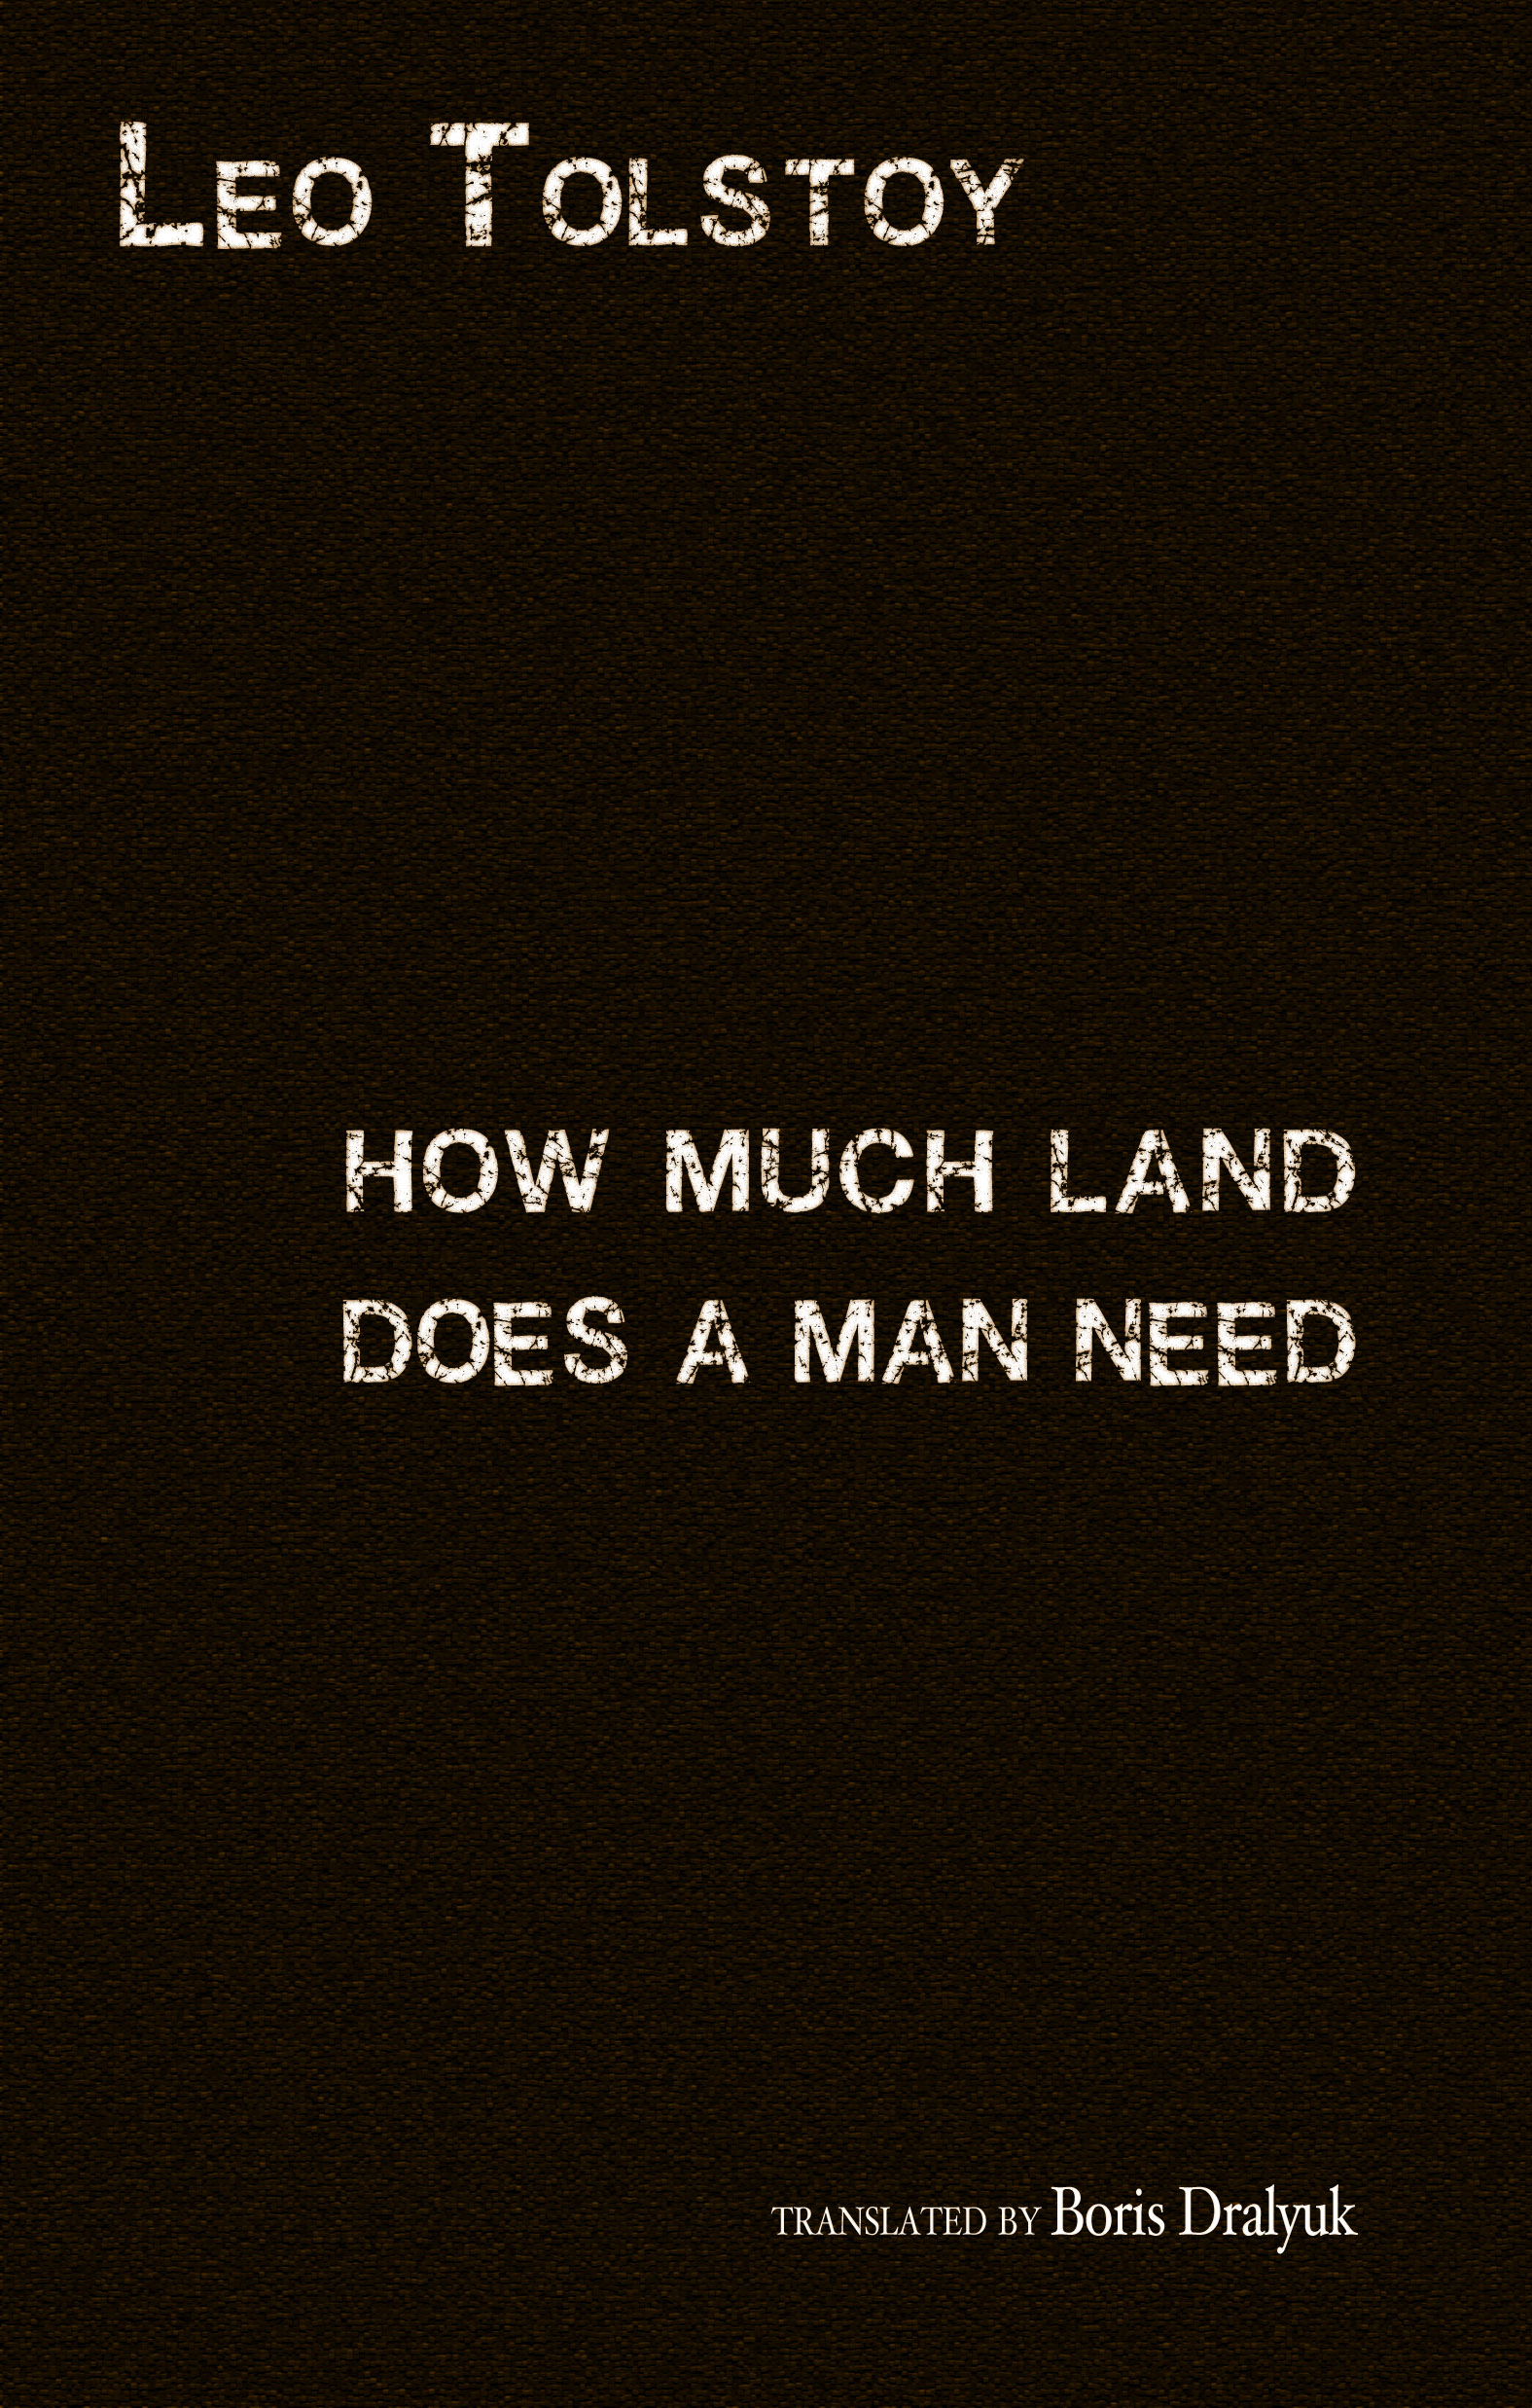 How Much Land Does a Man Need, by Leo Tolstoy